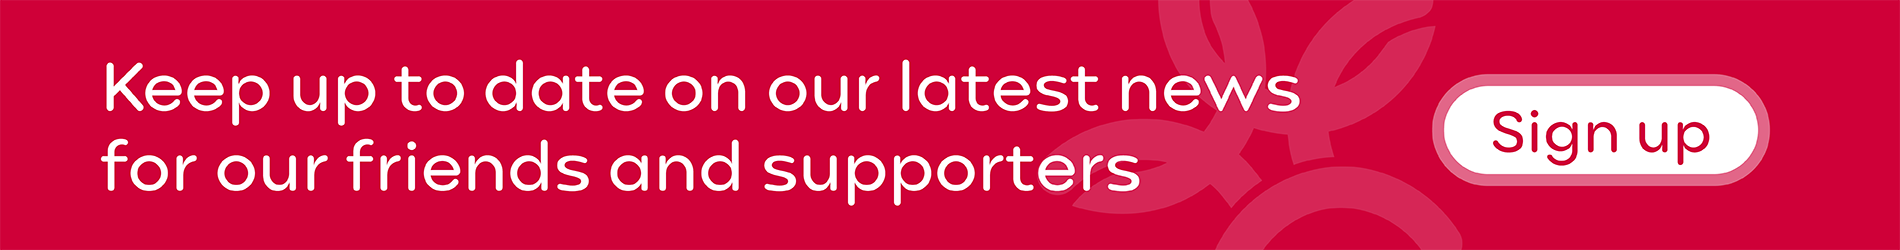 Keep up to date on our latest news for our friends and supporters